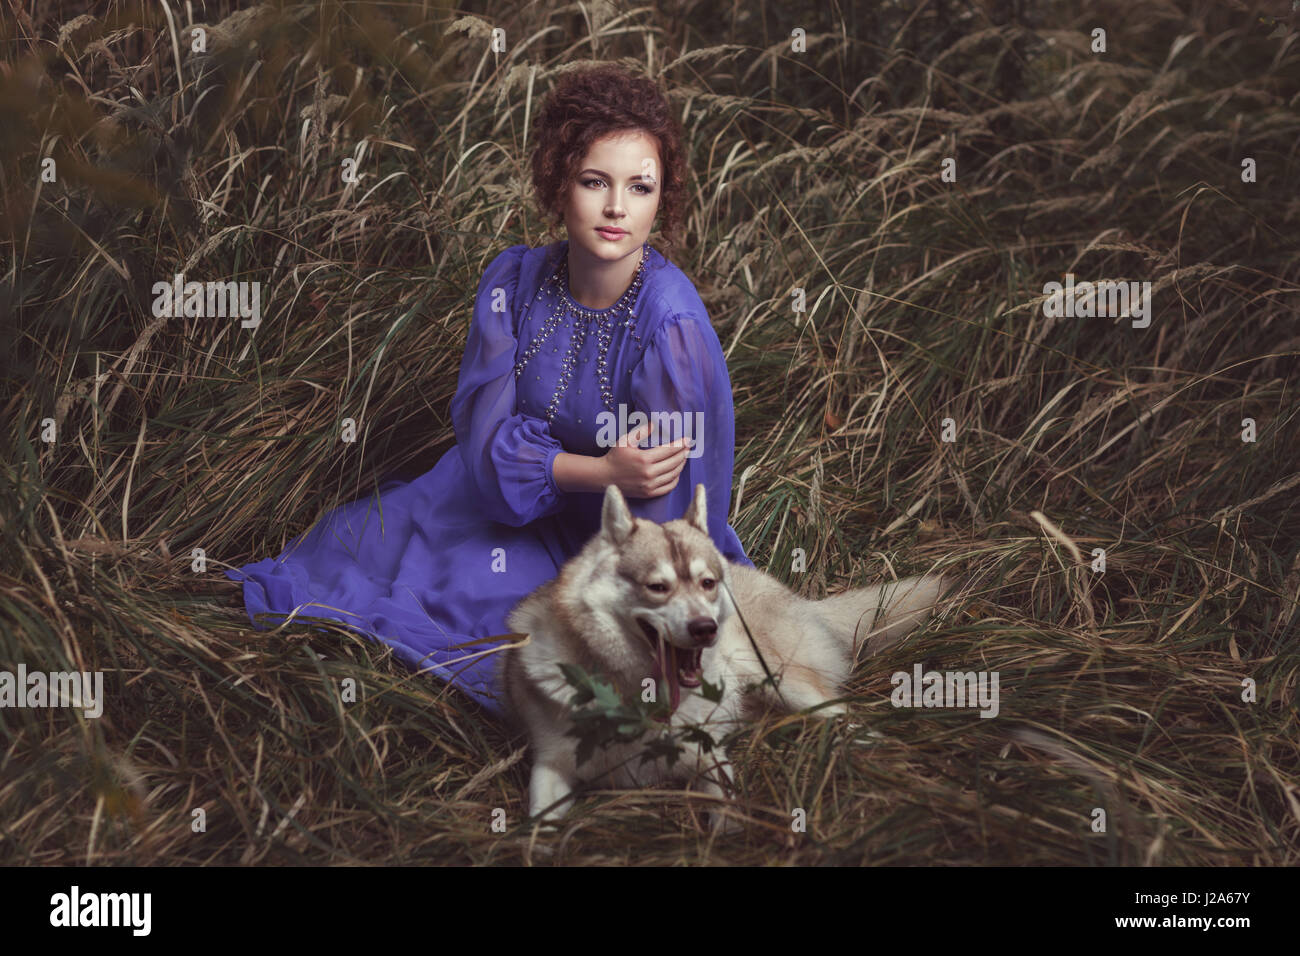 The curly-headed girl dressed in a beautiful dress lies a dog huskies nearby. - Stock Image